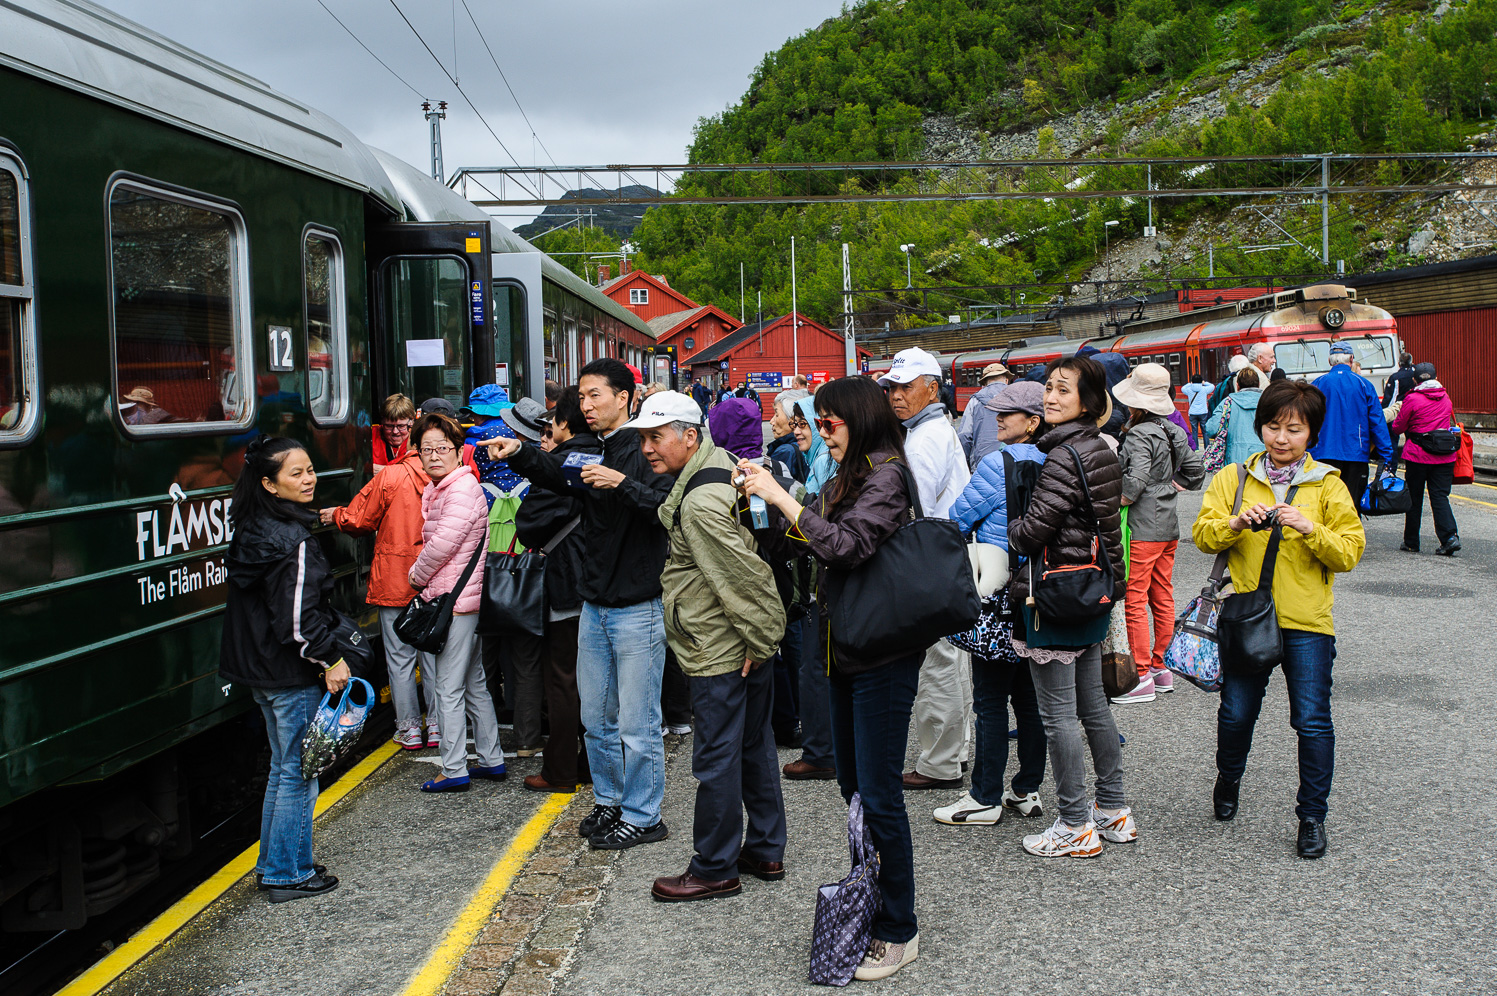 Tourism accounts for a mayor portion of the riders, now that cheap flights serve the end-to-end travelers. Bergensbanen was a popular tourist attraction from its time of opening. At Myrdal, one can change trains to go on the even more famous Flåm railway.